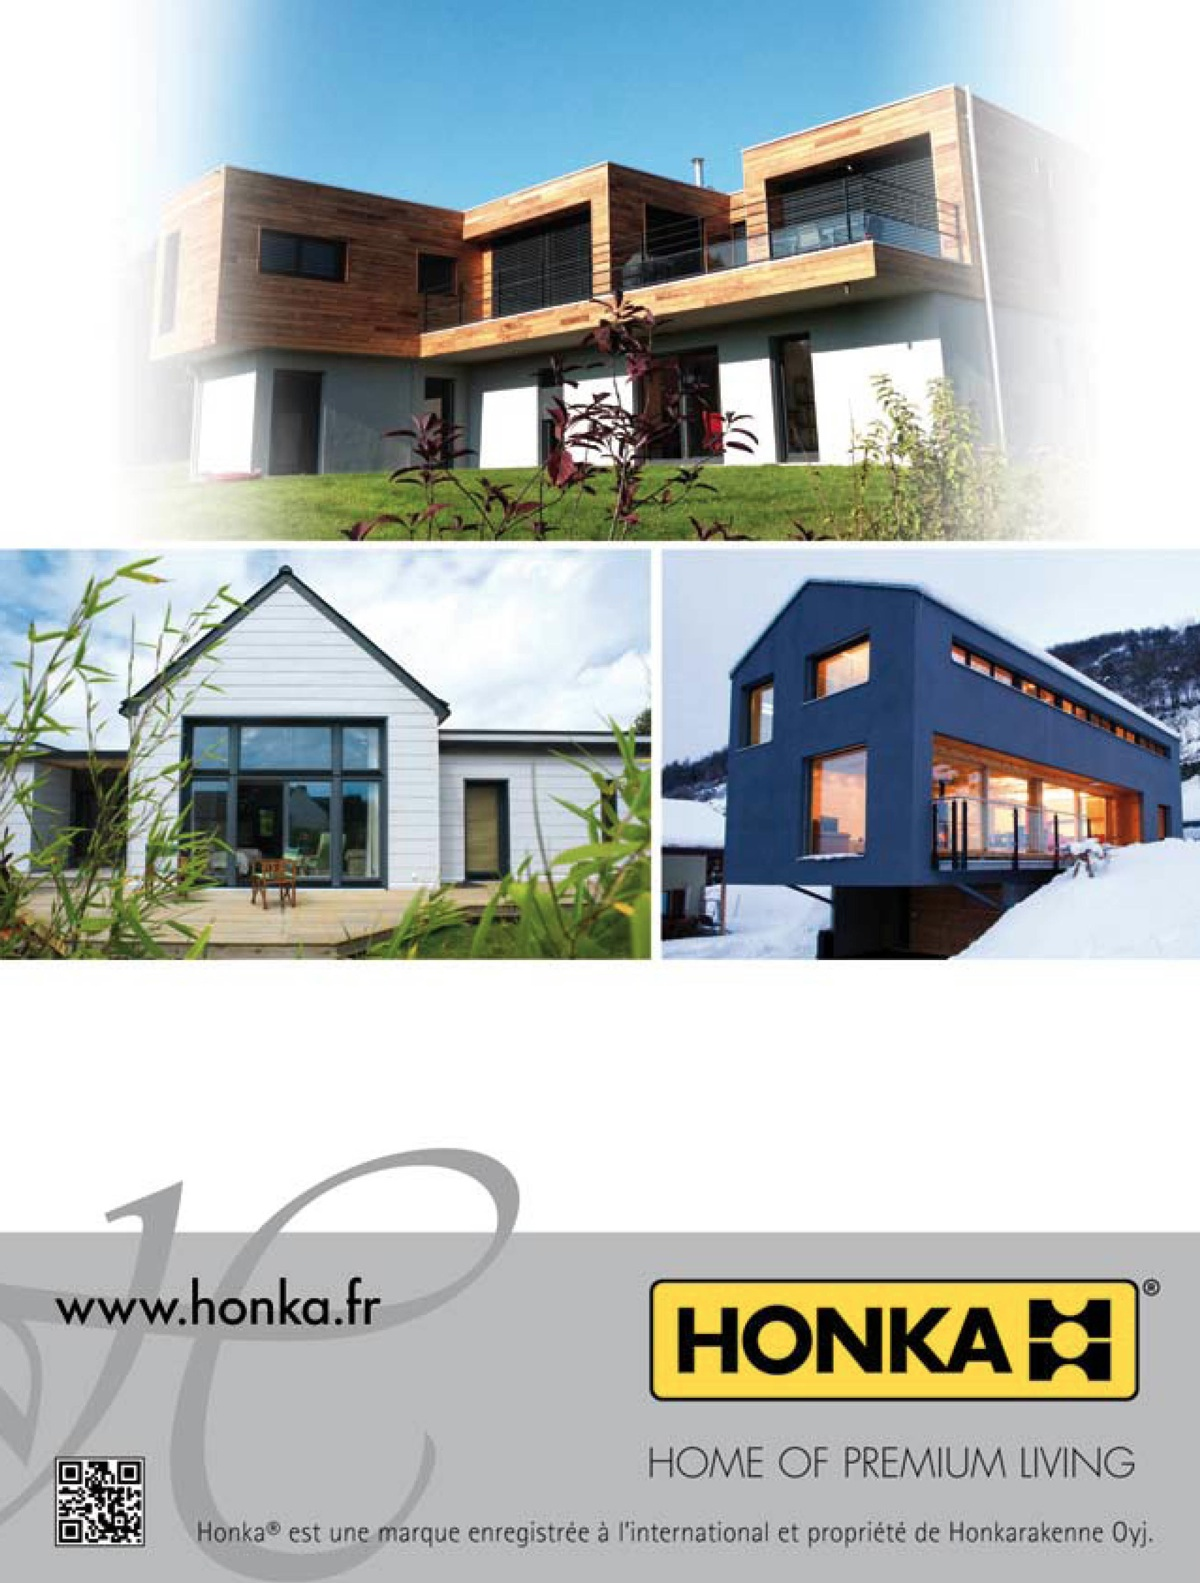 honka-home-of-premium-living